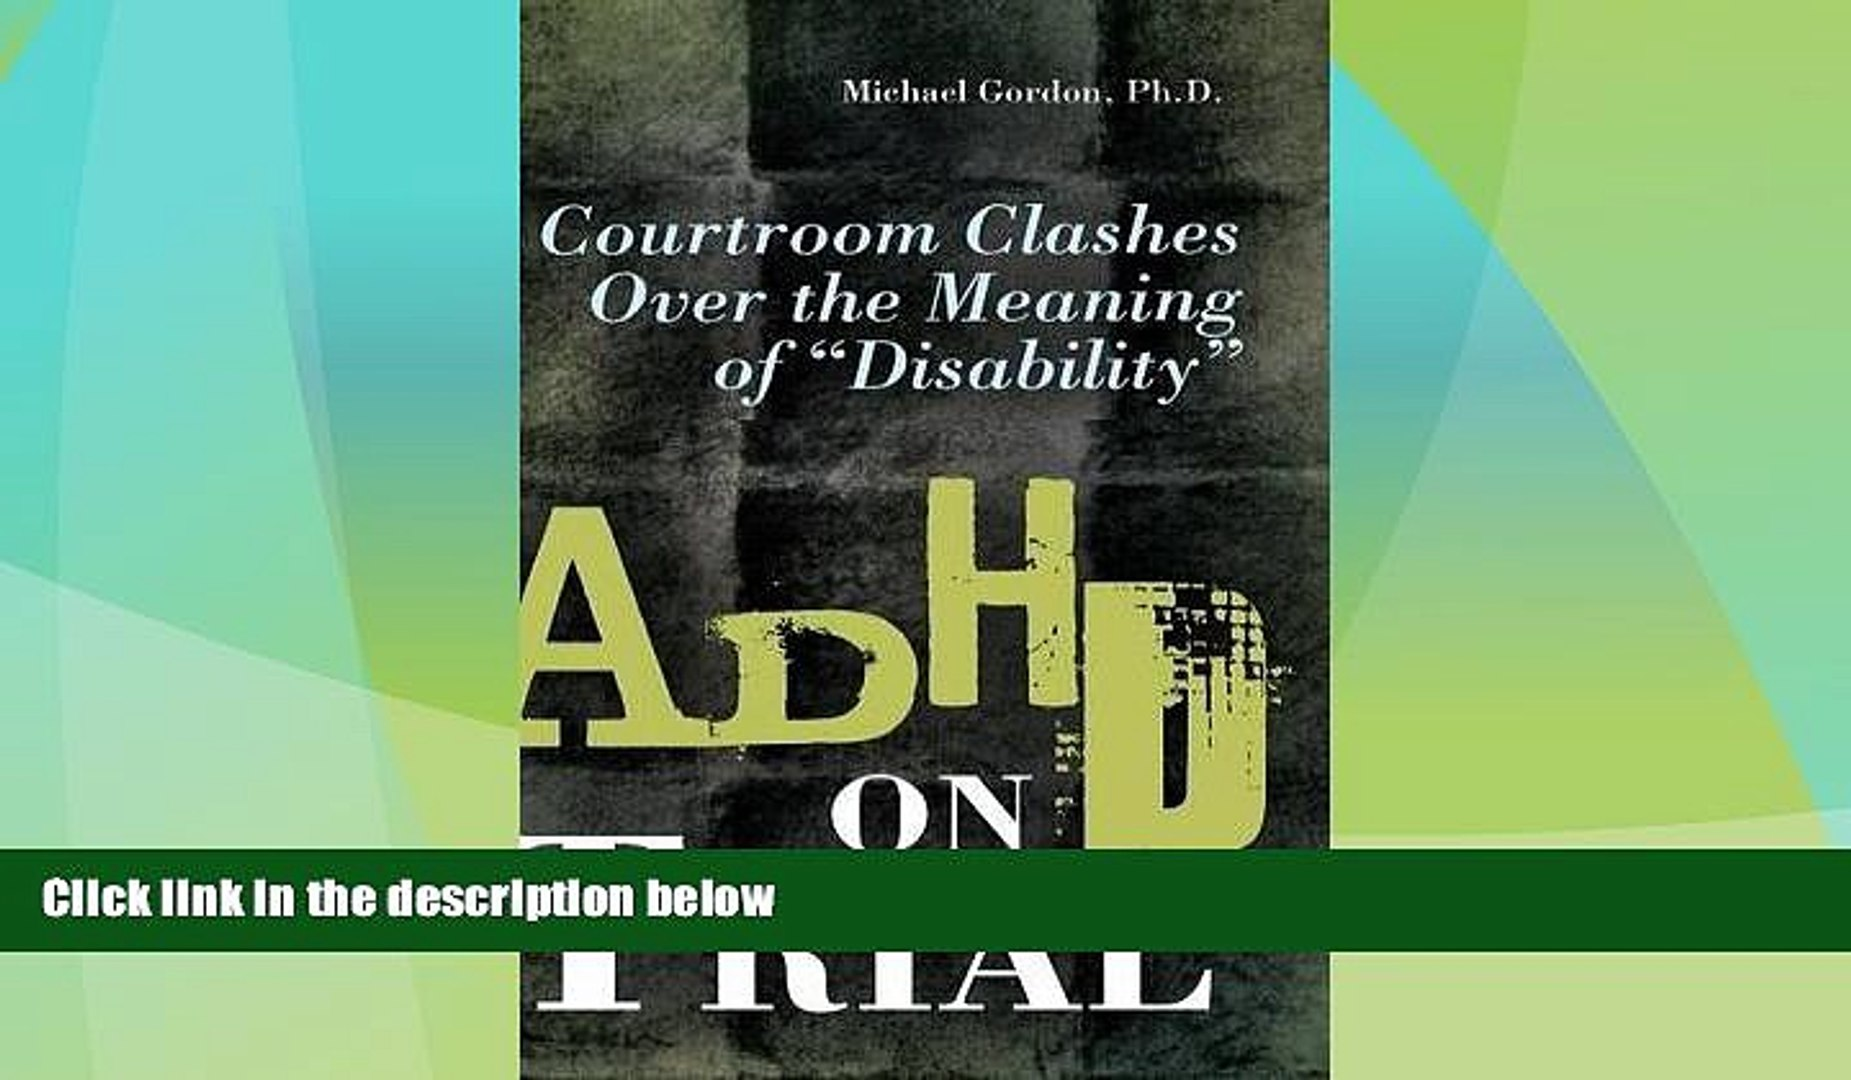 ADHD on Trial: Courtroom Clashes over the Meaning of Disability